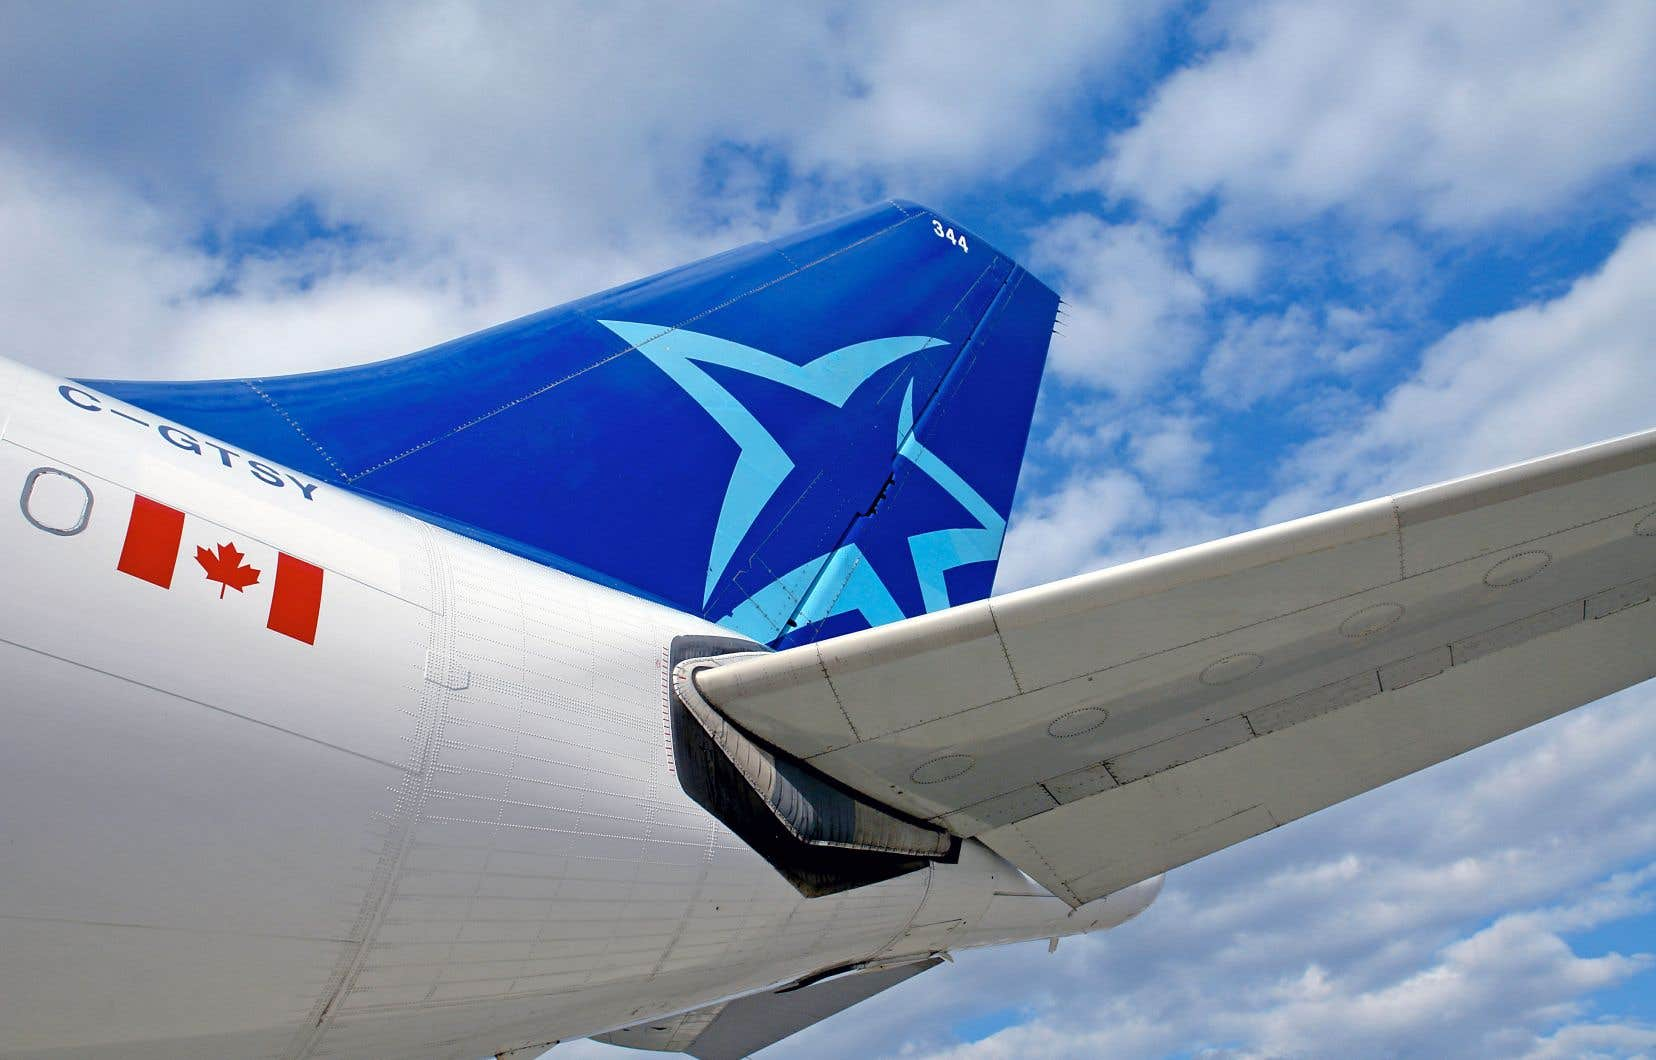 L'entente d'exclusivité accordée par Transat à Air Canada prend fin mercredi.